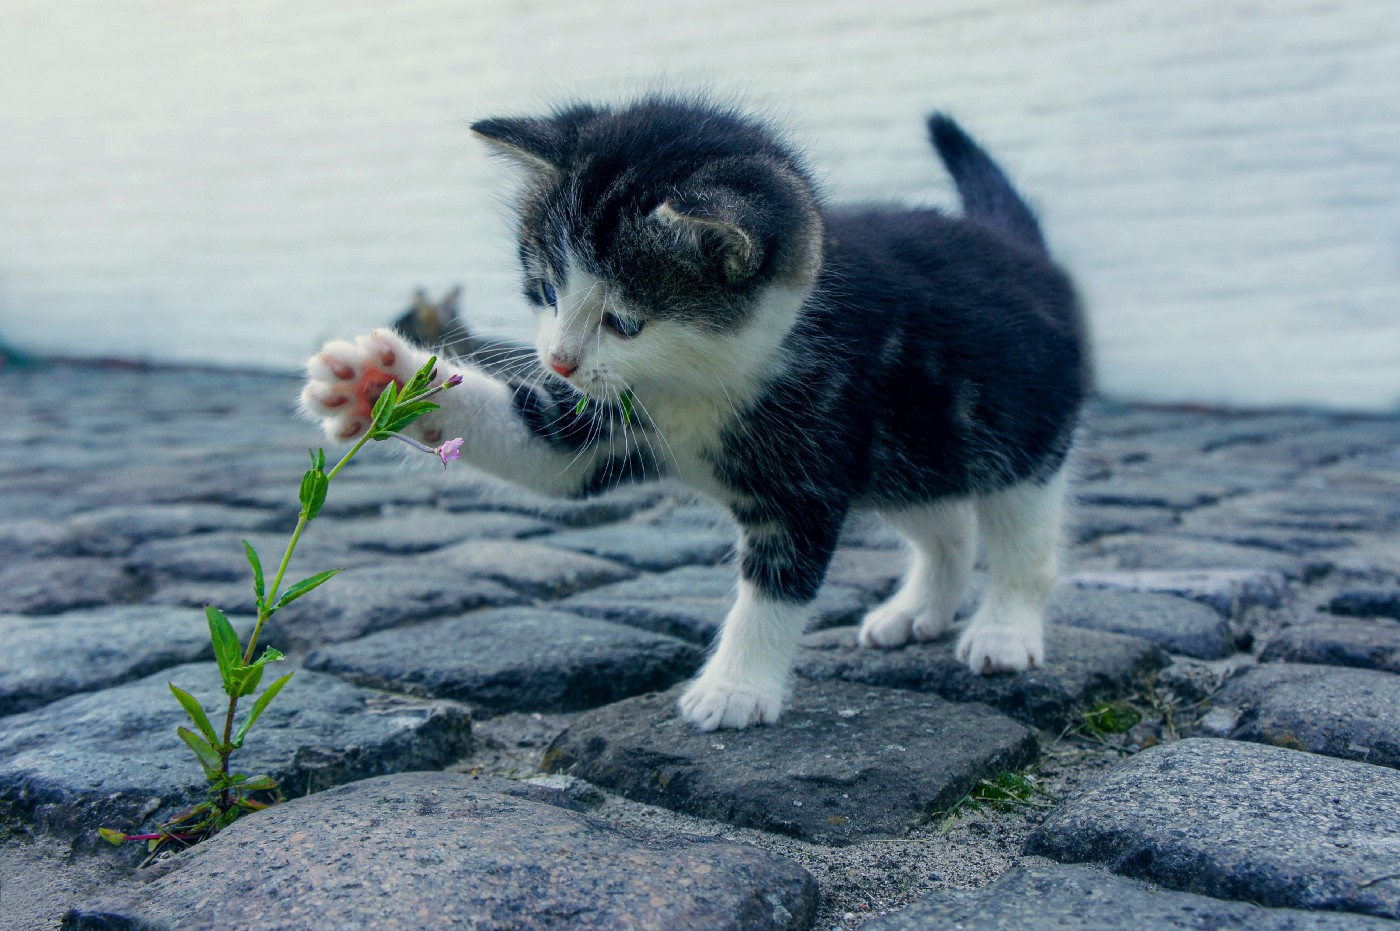 Kitten pawing at flower